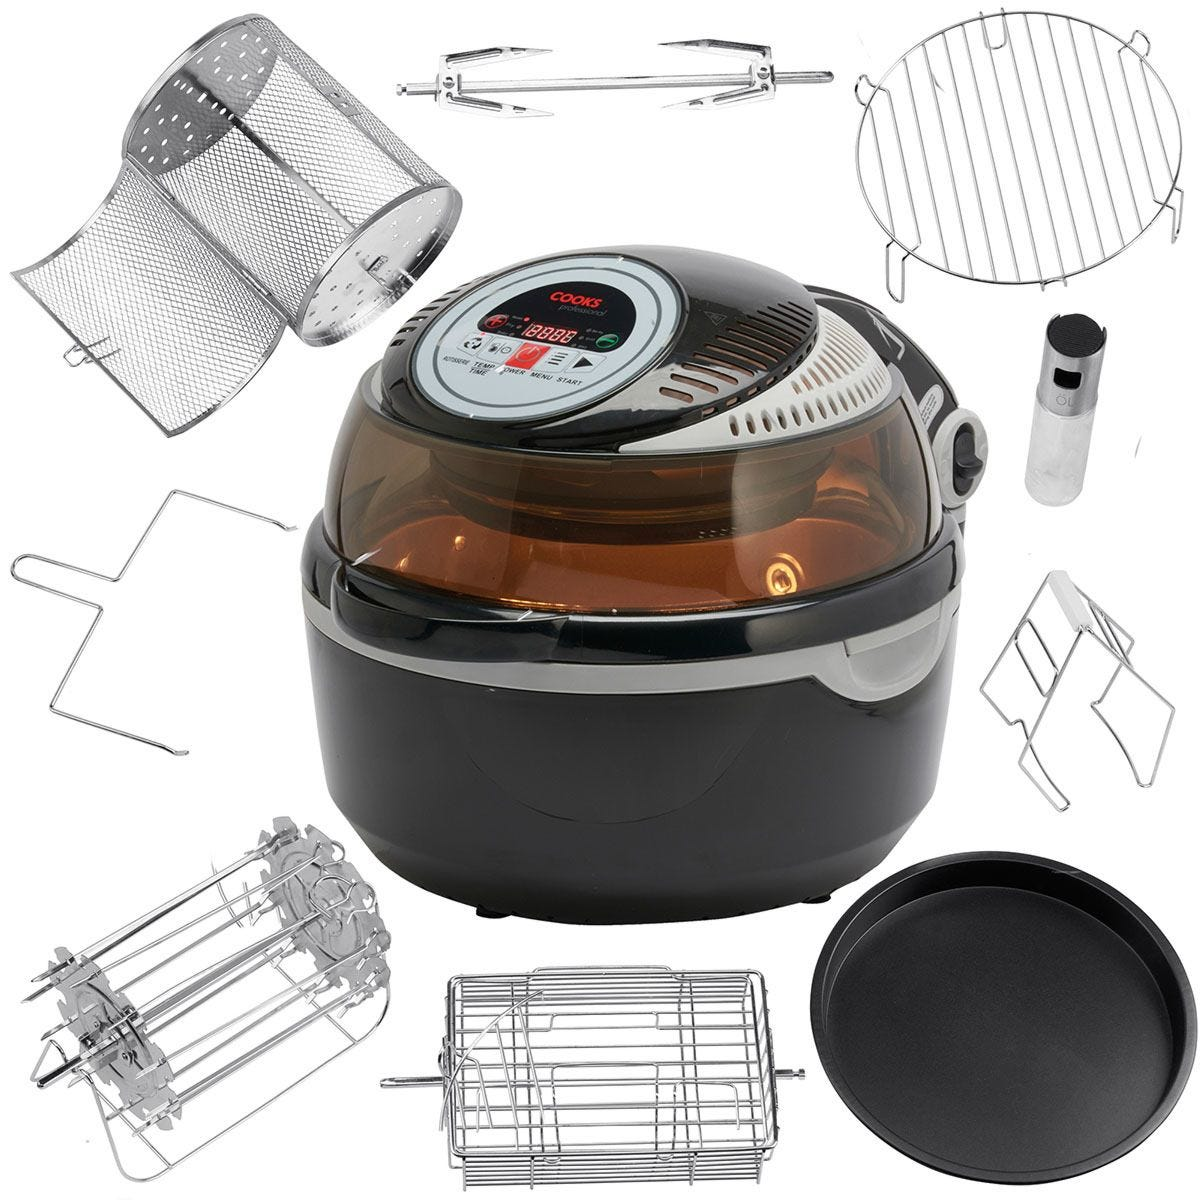 Cooks Professional G4397 V2 Rotisserie Air Fryer with Accessories Pack – Black/Grey